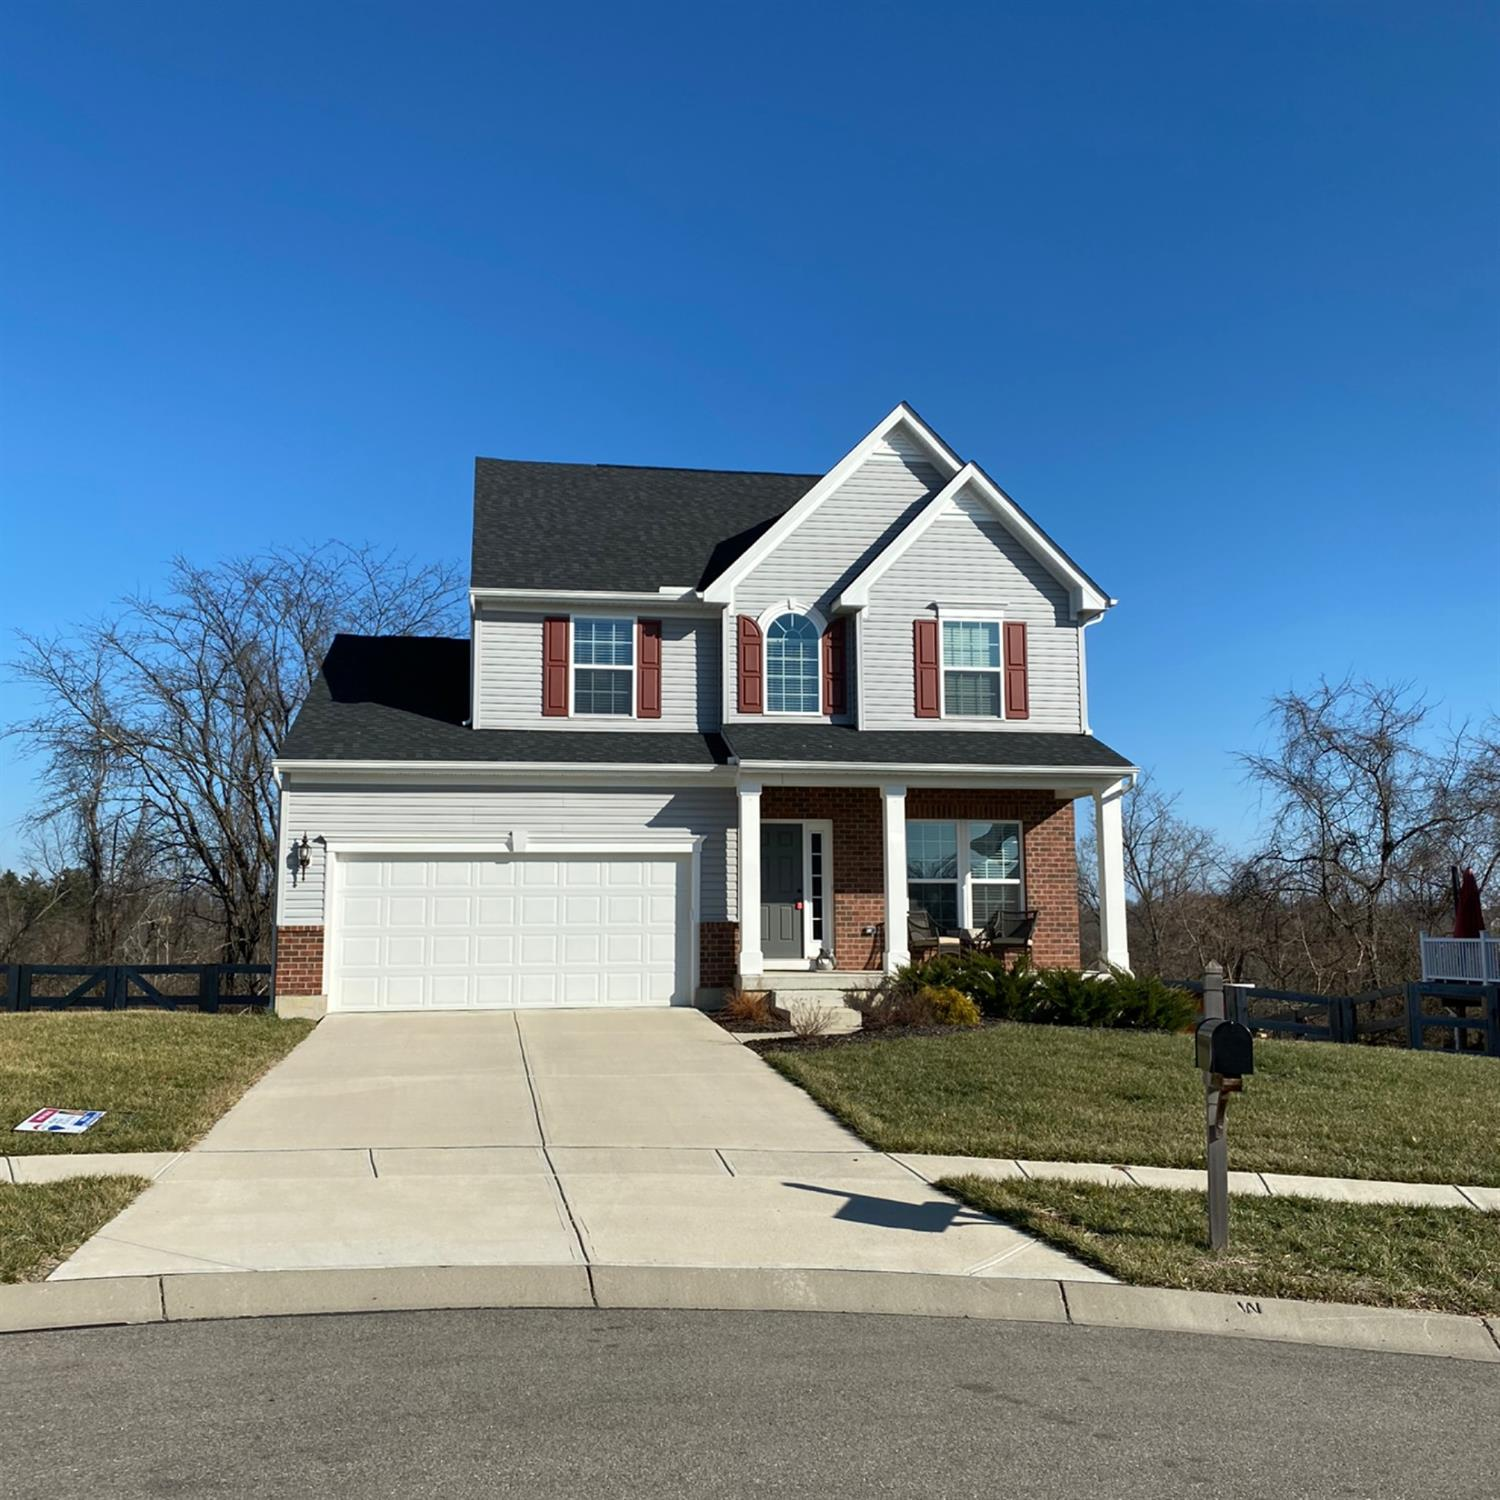 8592 Forest Valley Dr Colerain Twp.West, OH